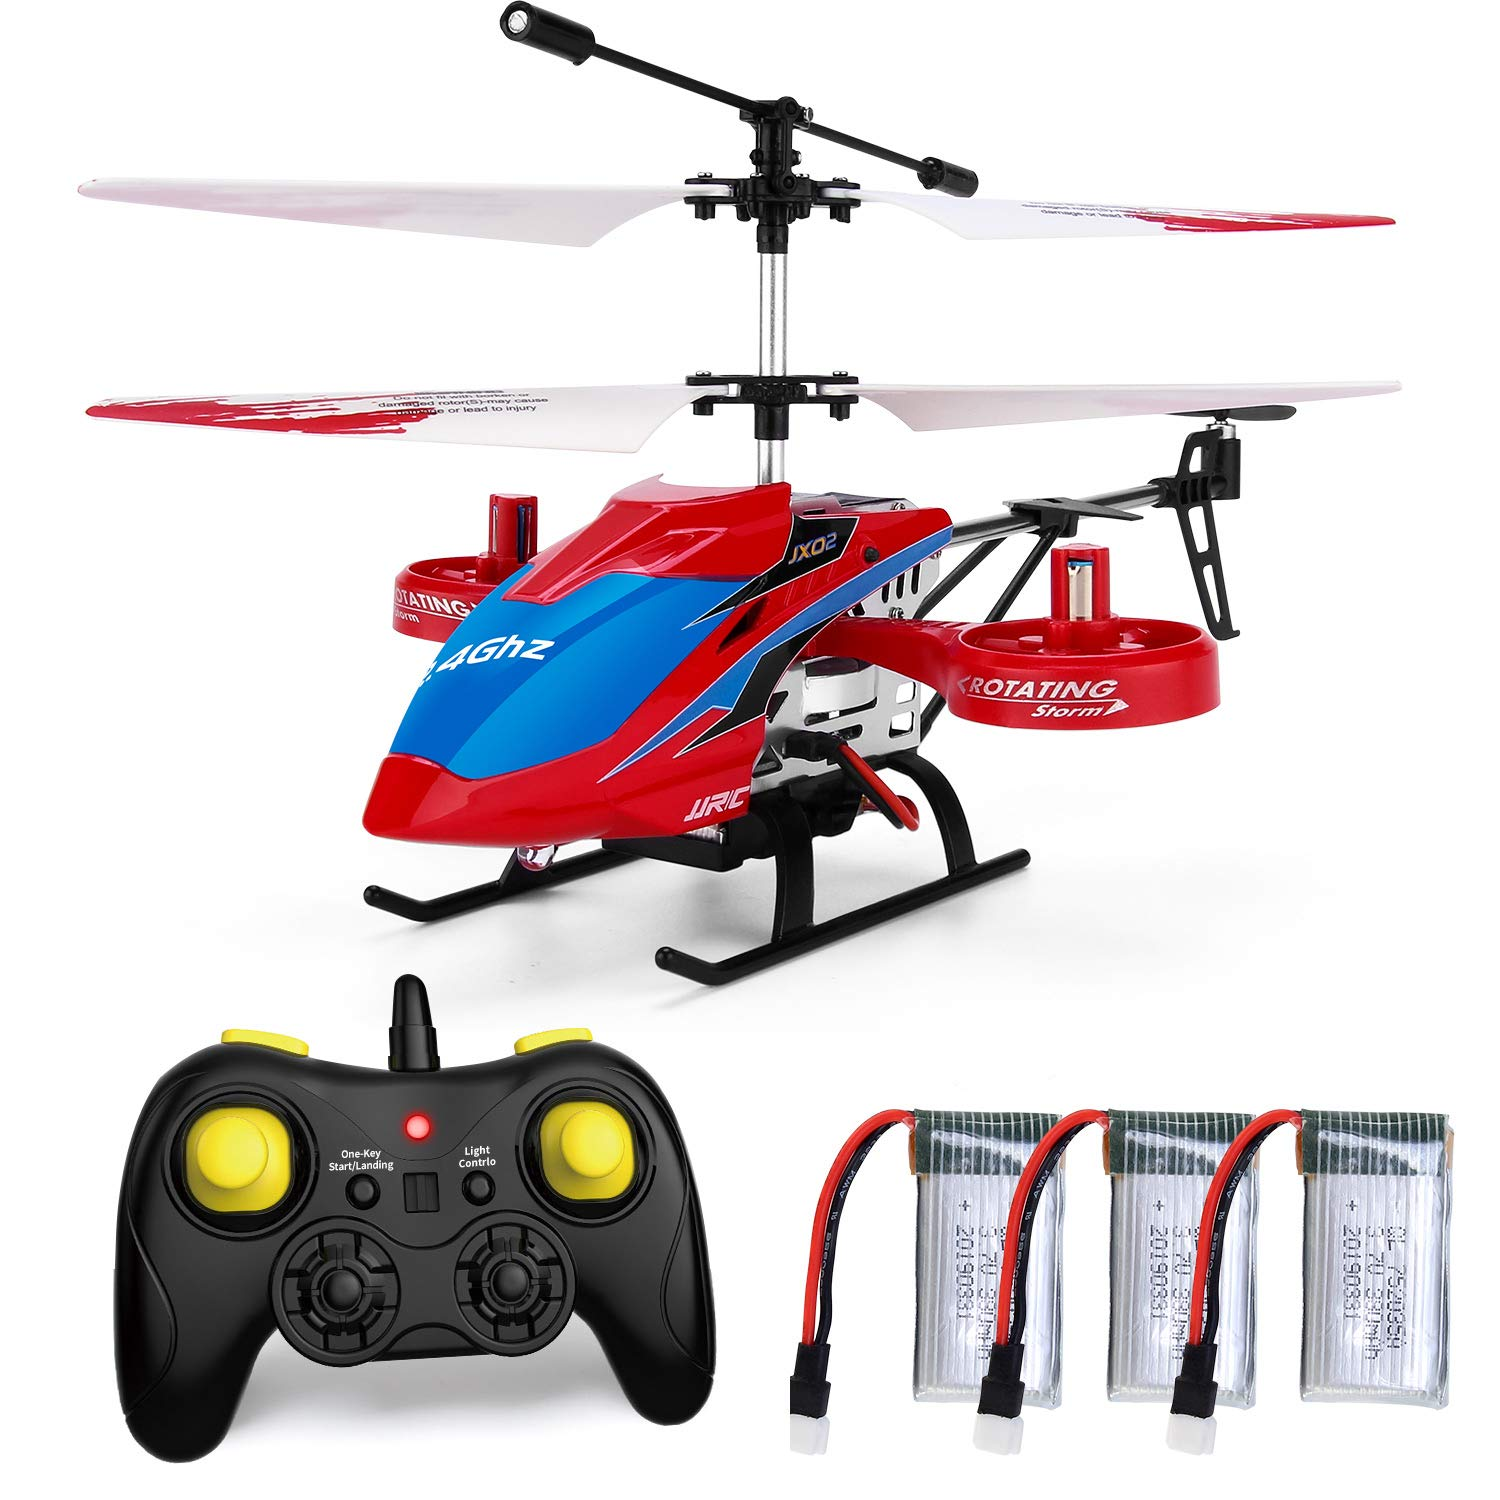 JJRC 4CH RC Helicopter with Remote Control, JX02 Fly Sideway Helicopter  Altitude Hold with 3 Batteries in 18 Minutes, One Key Take Off/Landing,